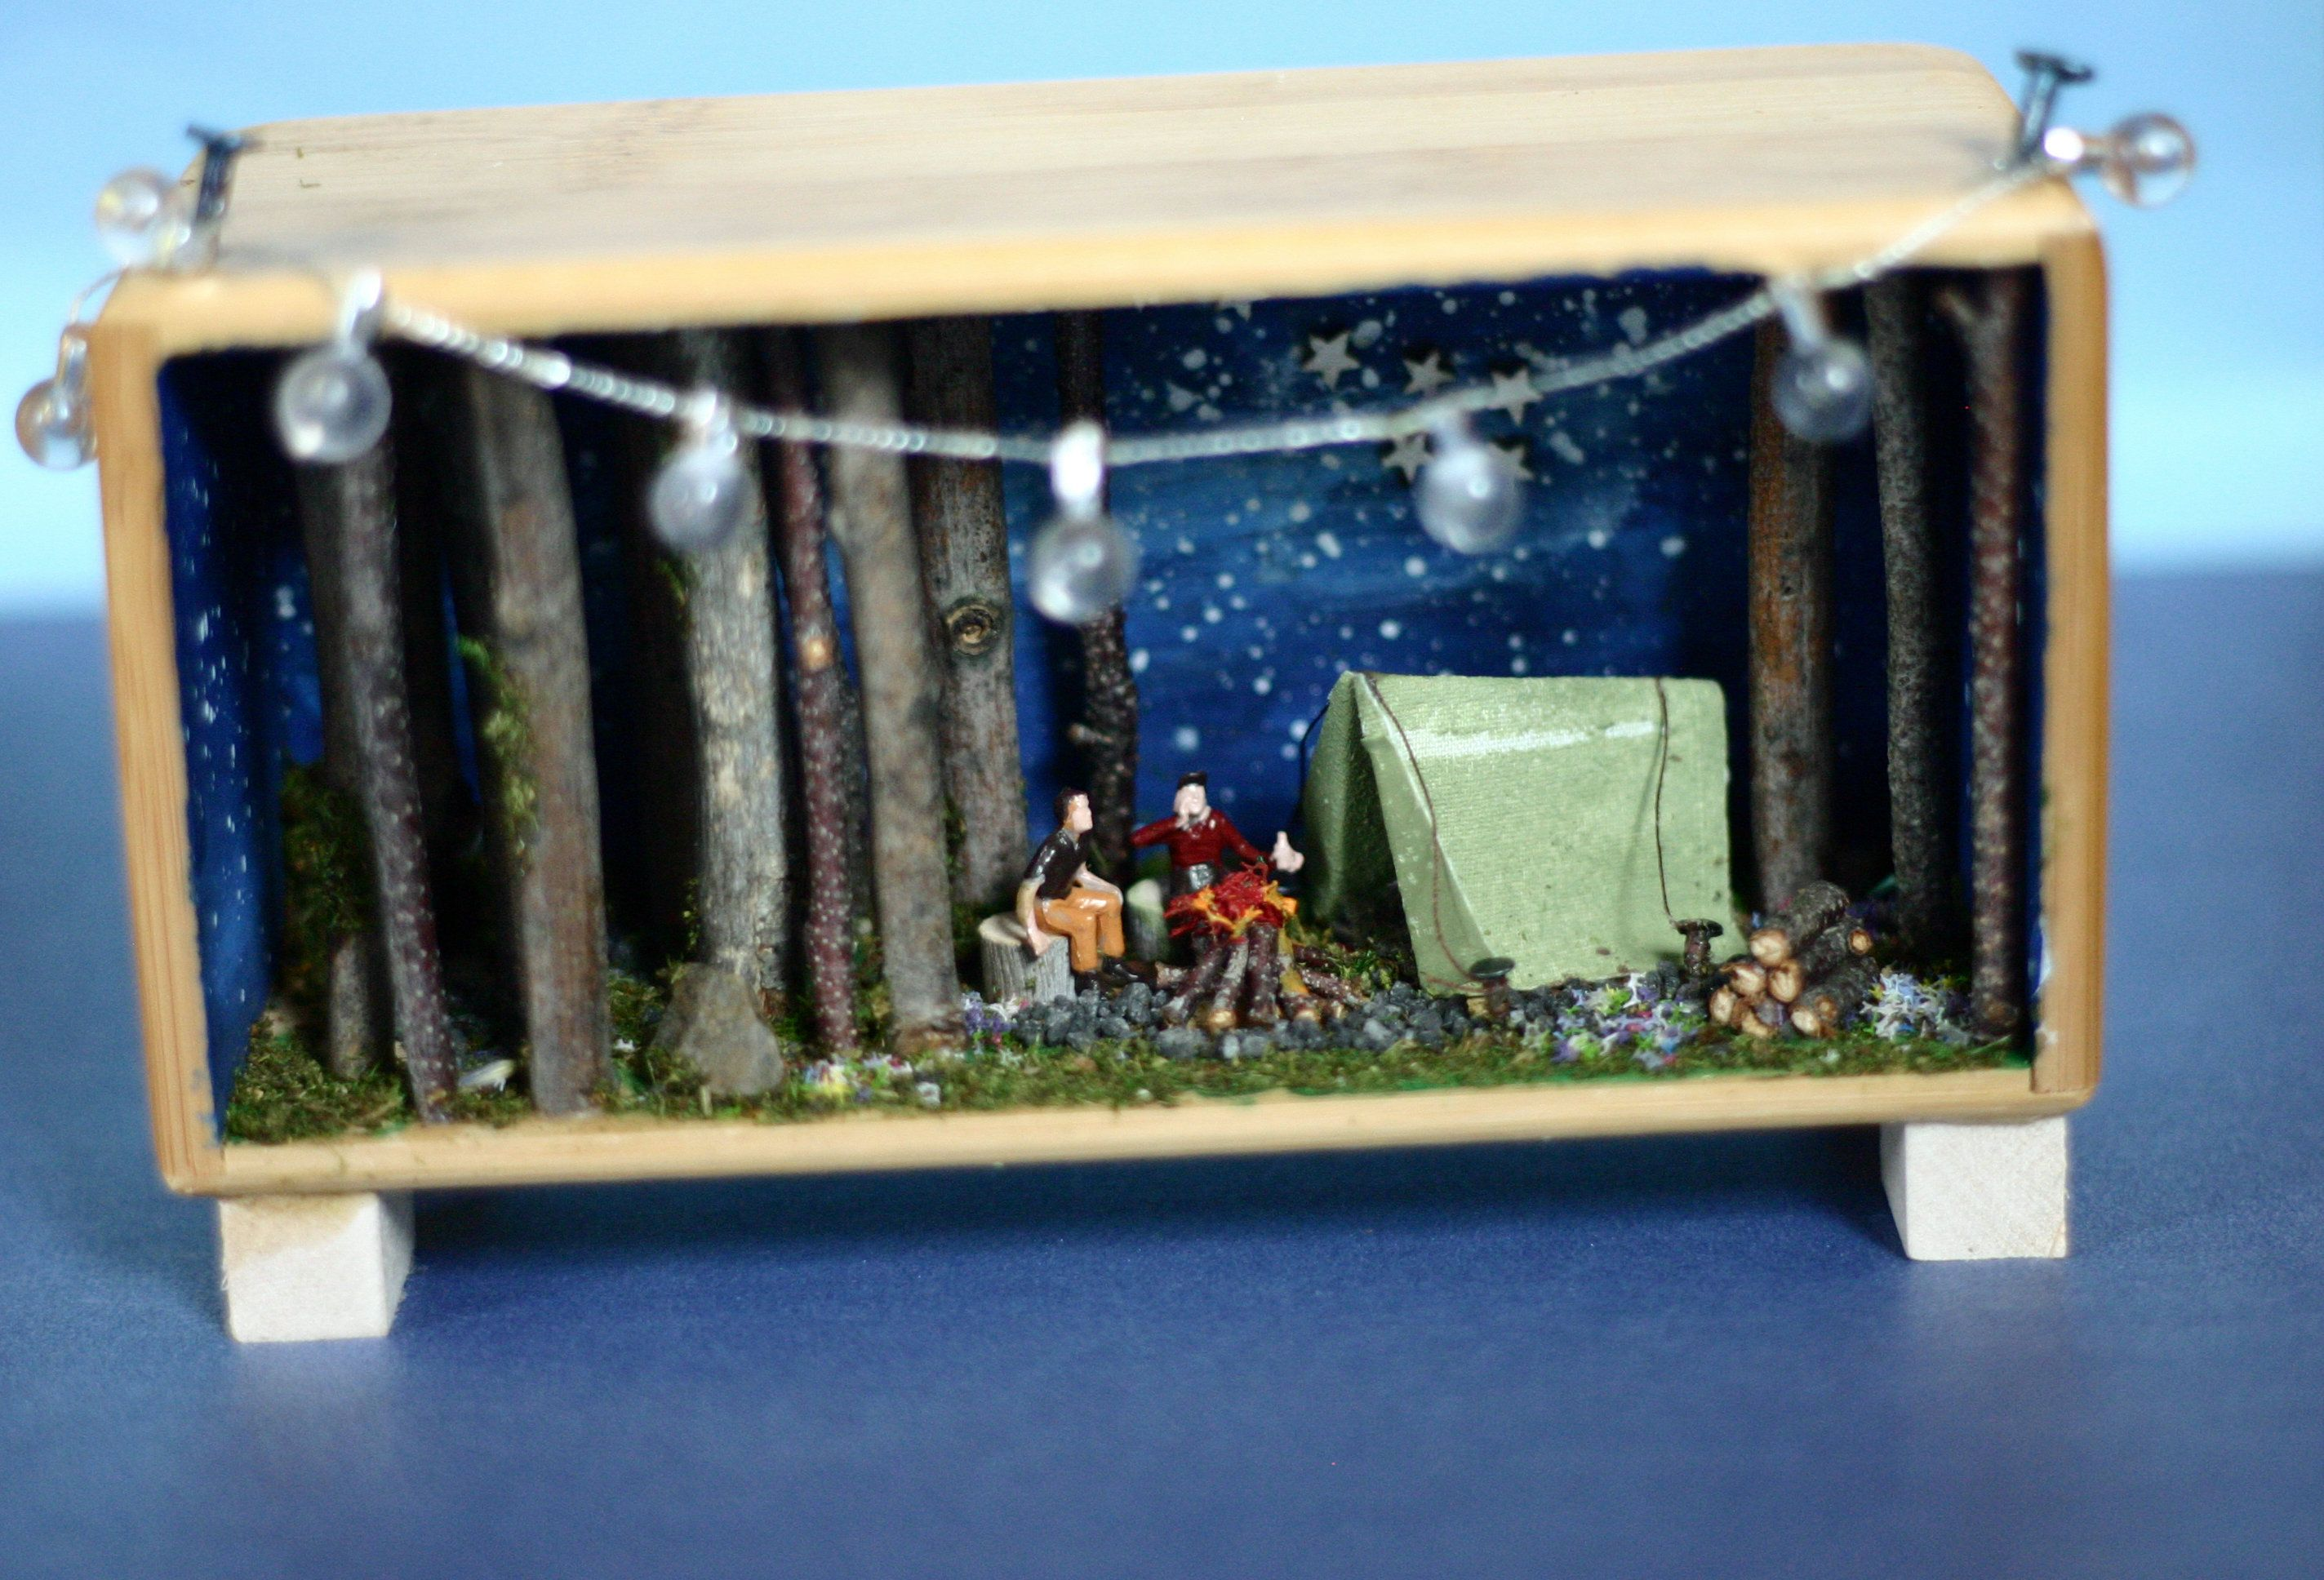 Photo of Diorama, camping shadow box, camping diorama, miniature camping scene, summer vacation, scene in a box, tent camping, handmade, stick trees